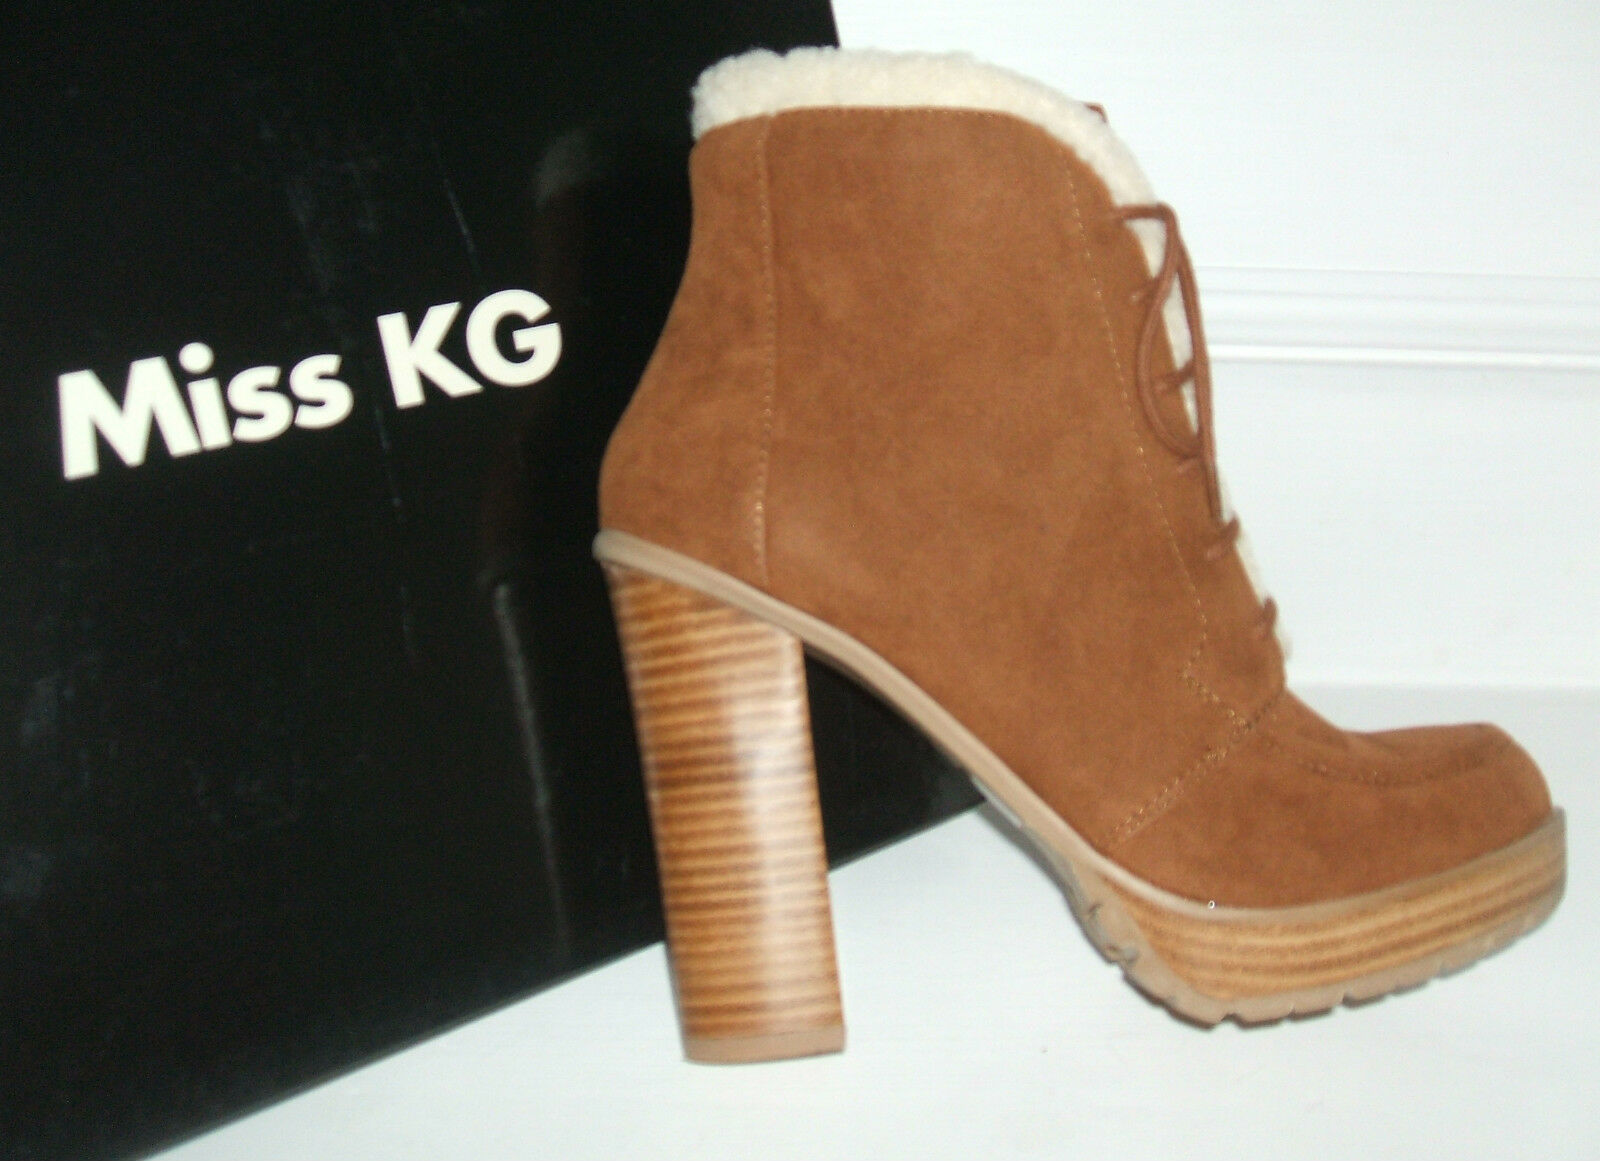 MISS KG SIZE 3 6 7 8 SERENE TAN SUEDE LACE UP HI HEEL MILITARY ANKLE BOOTS